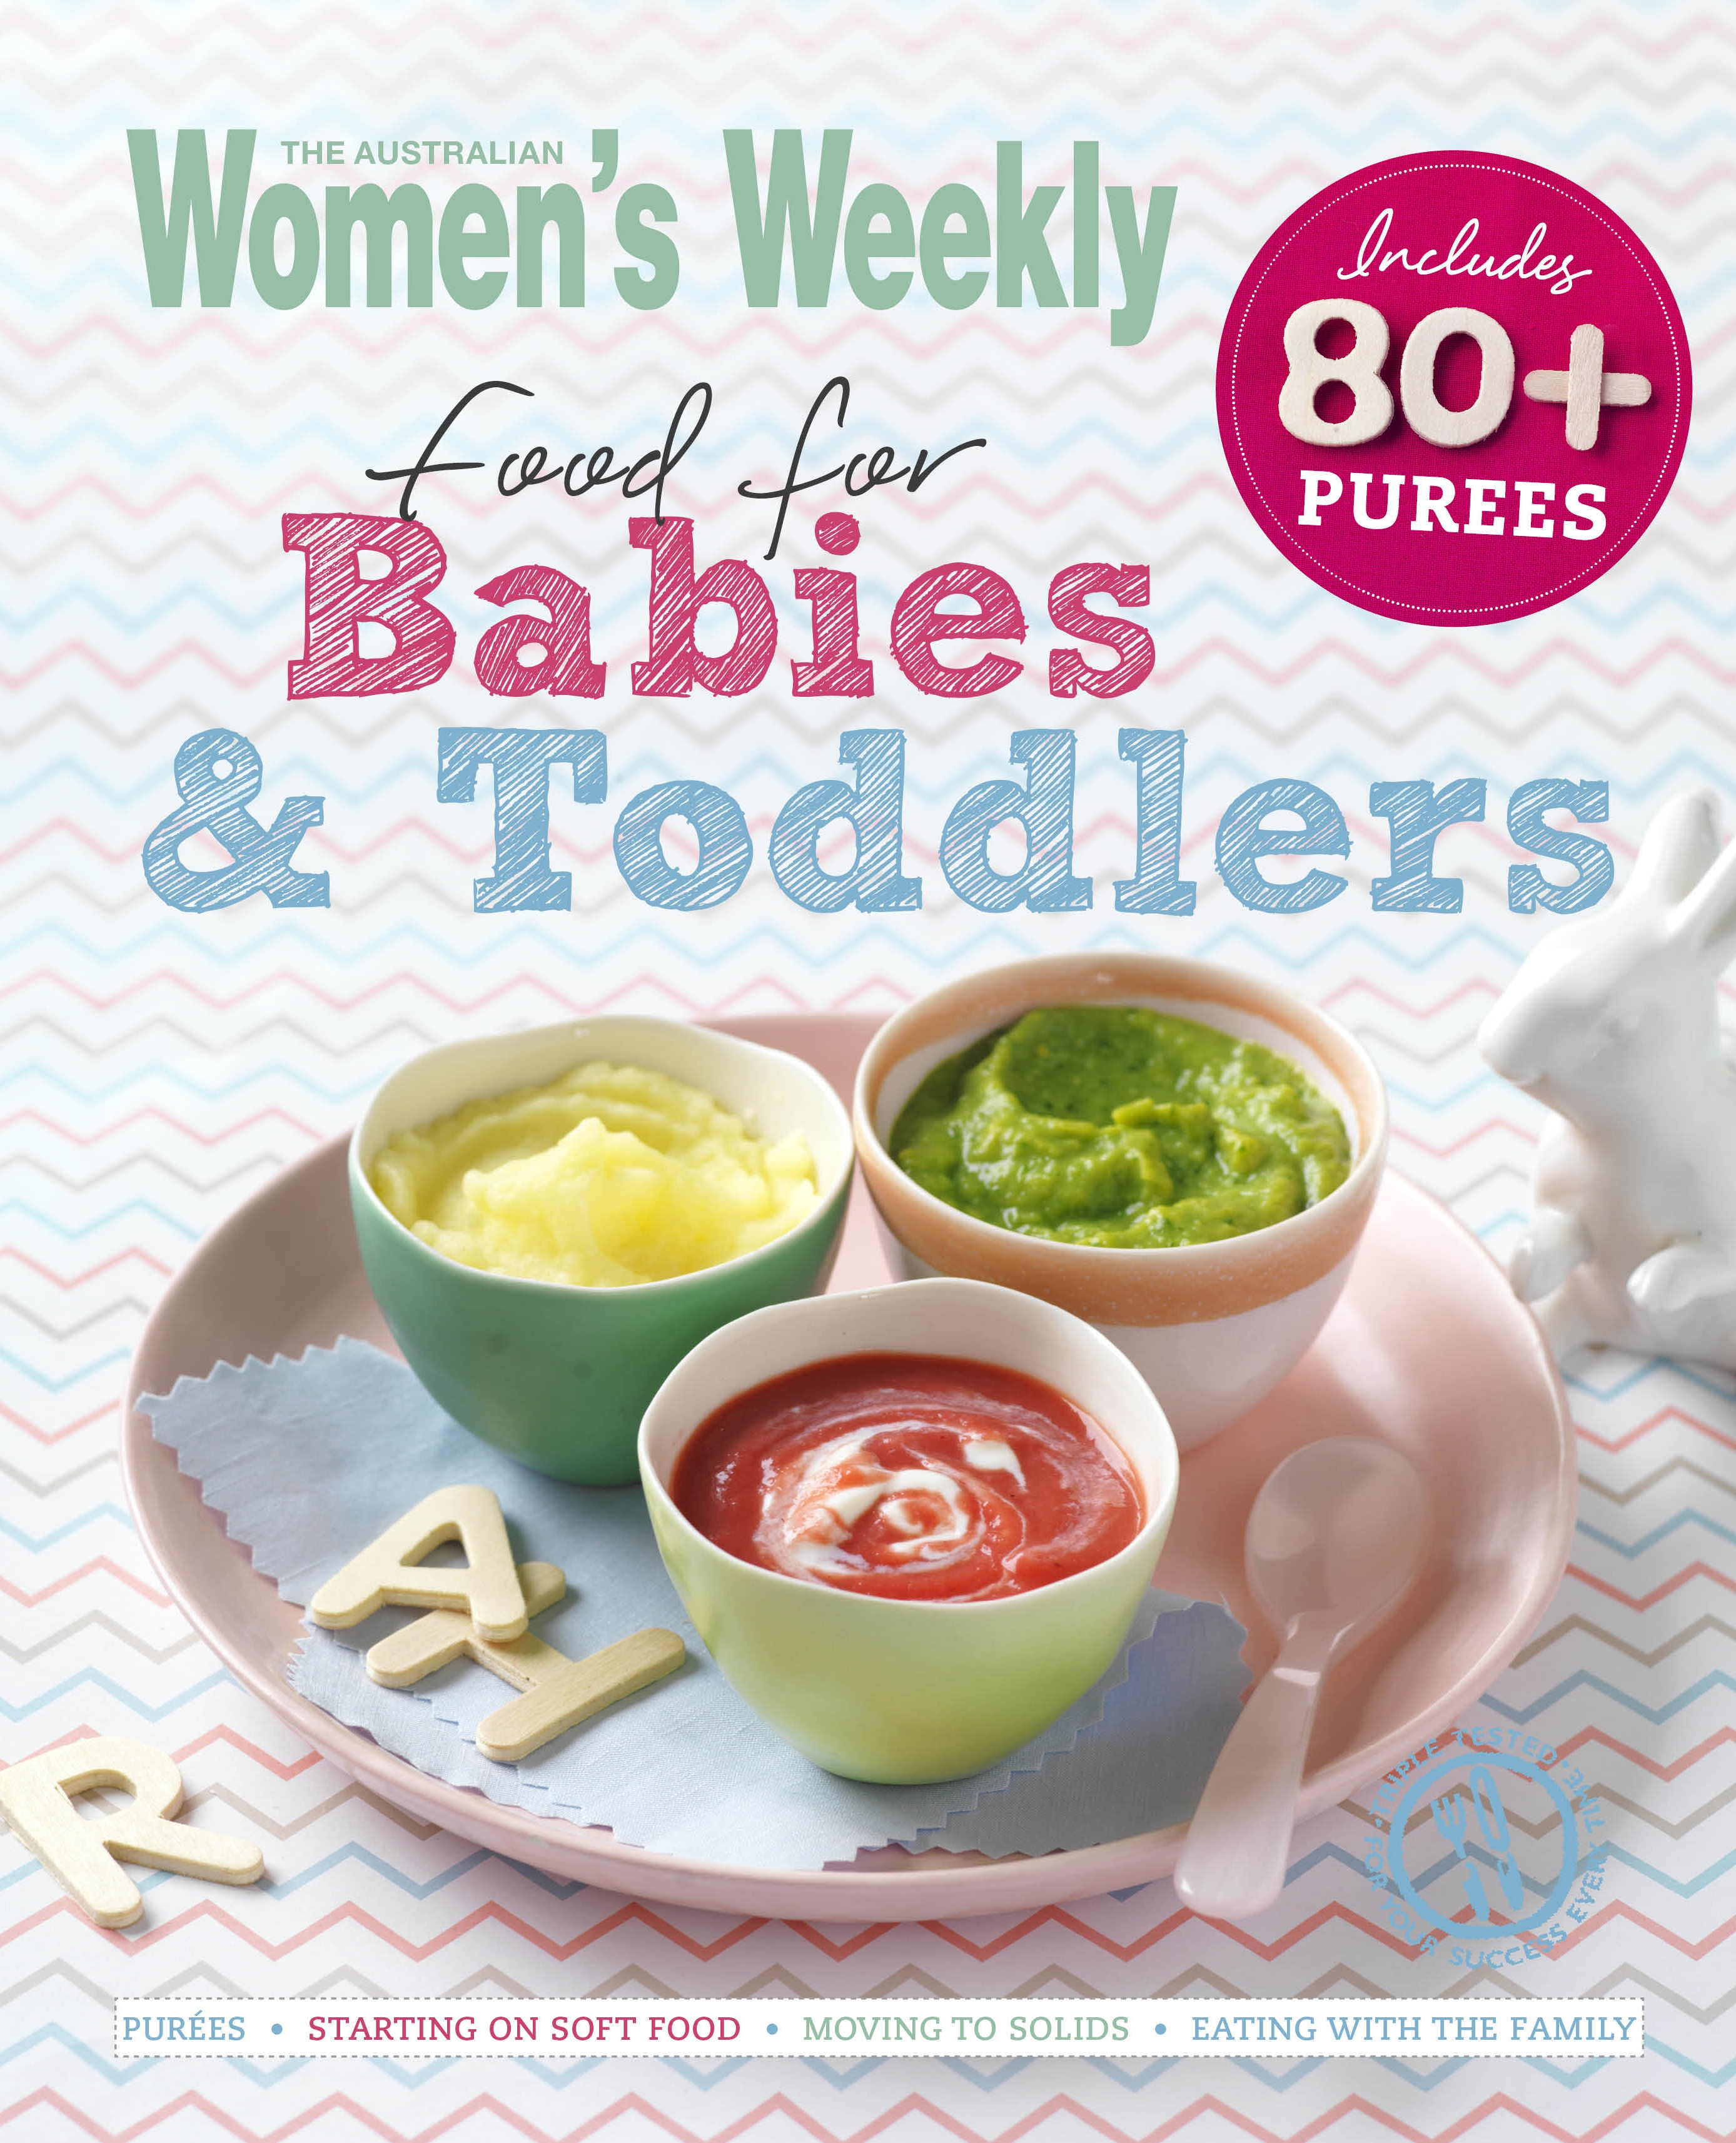 Food for babies and toddlers by australian womens weekly weekly food for babies and toddlers forumfinder Choice Image